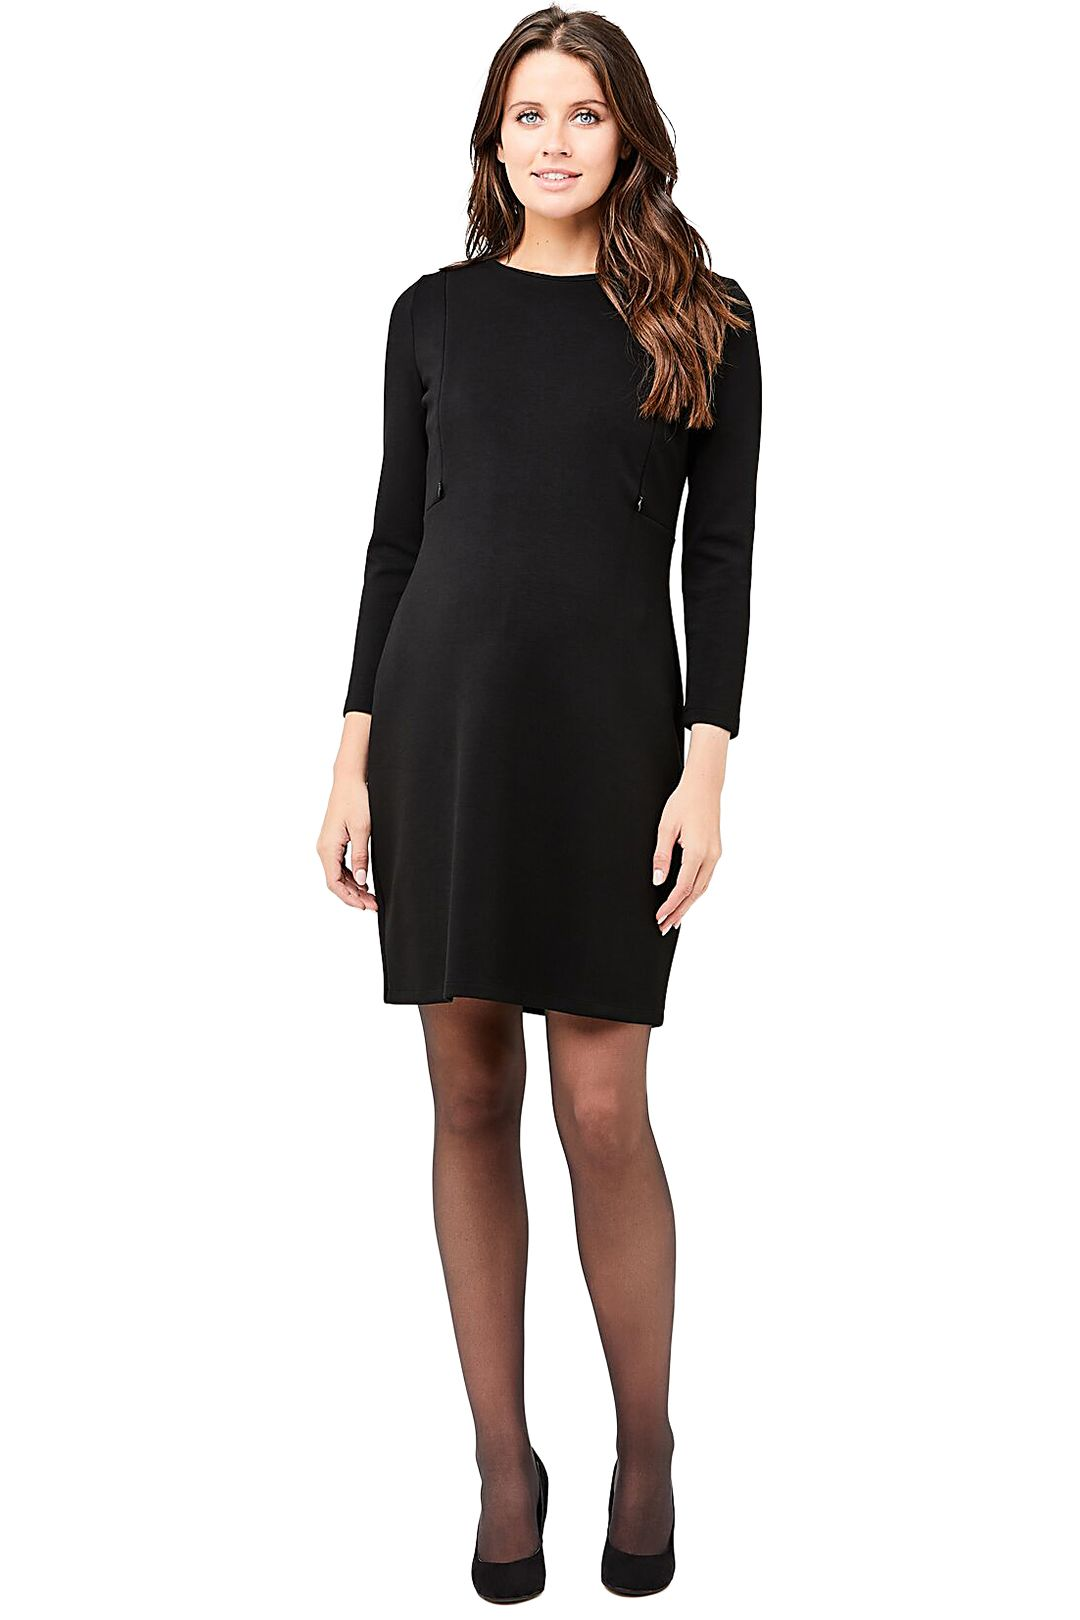 Ripe-Maternity-Sandra-Nursing-Dress-Black-Front